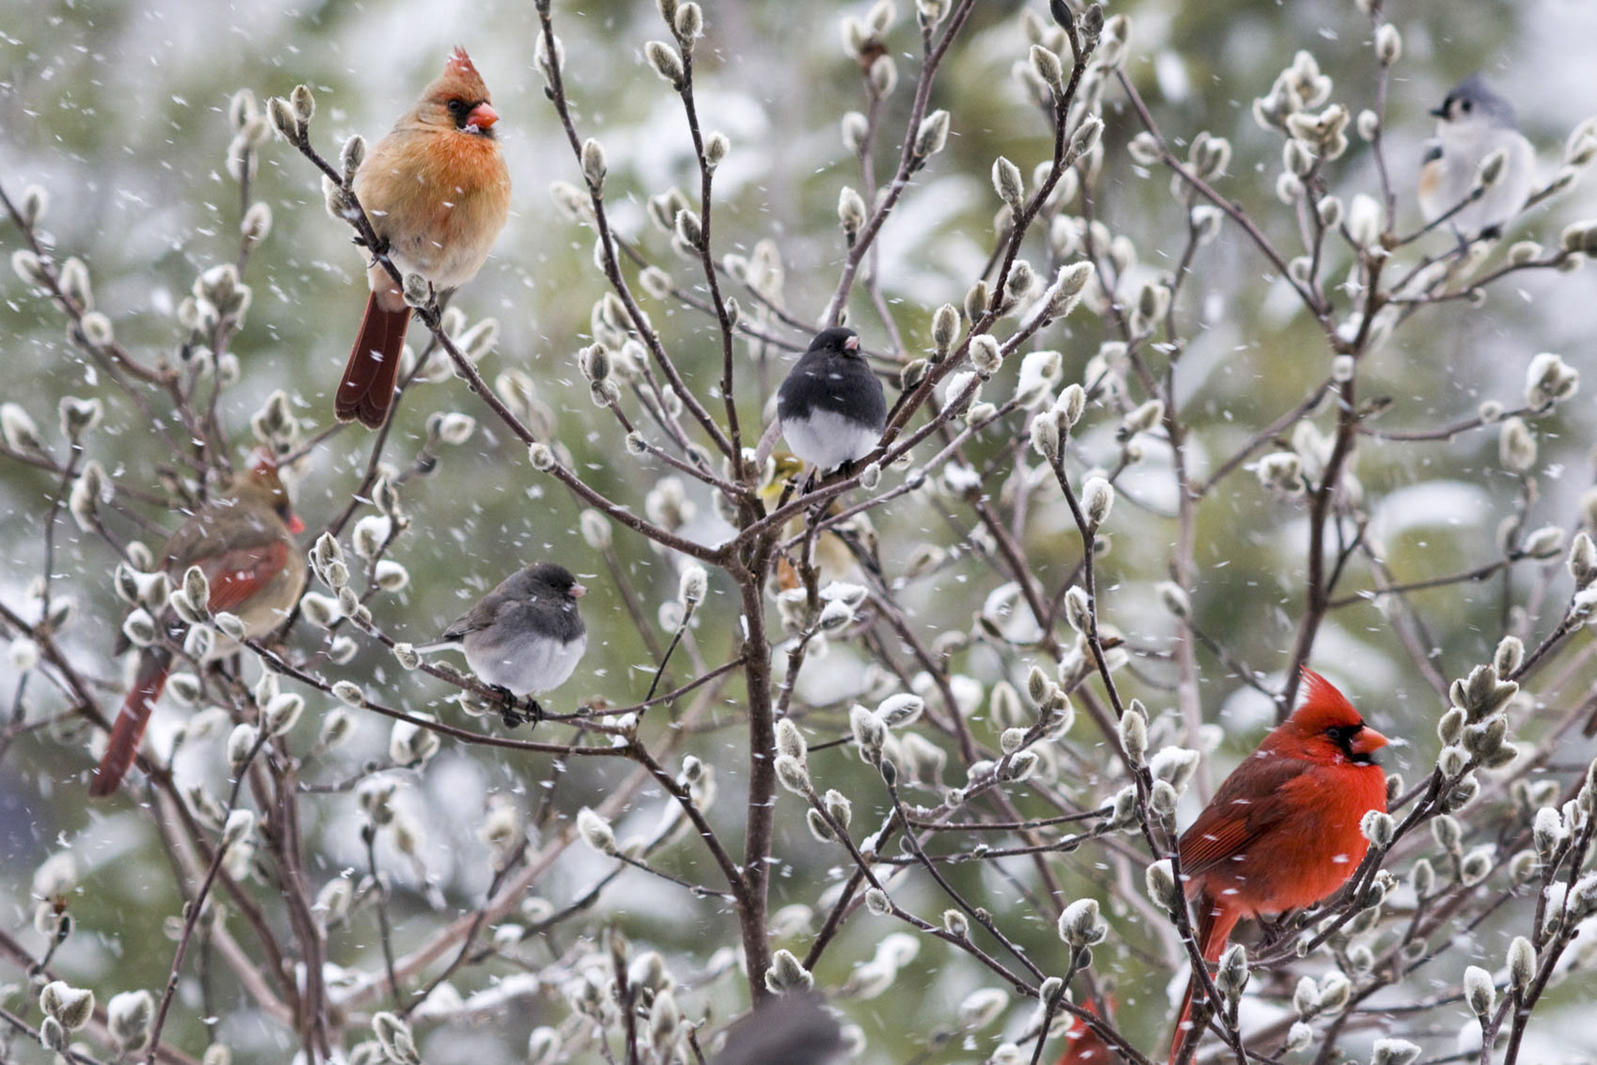 Northern Cardinal and Dark-eyed Junco.